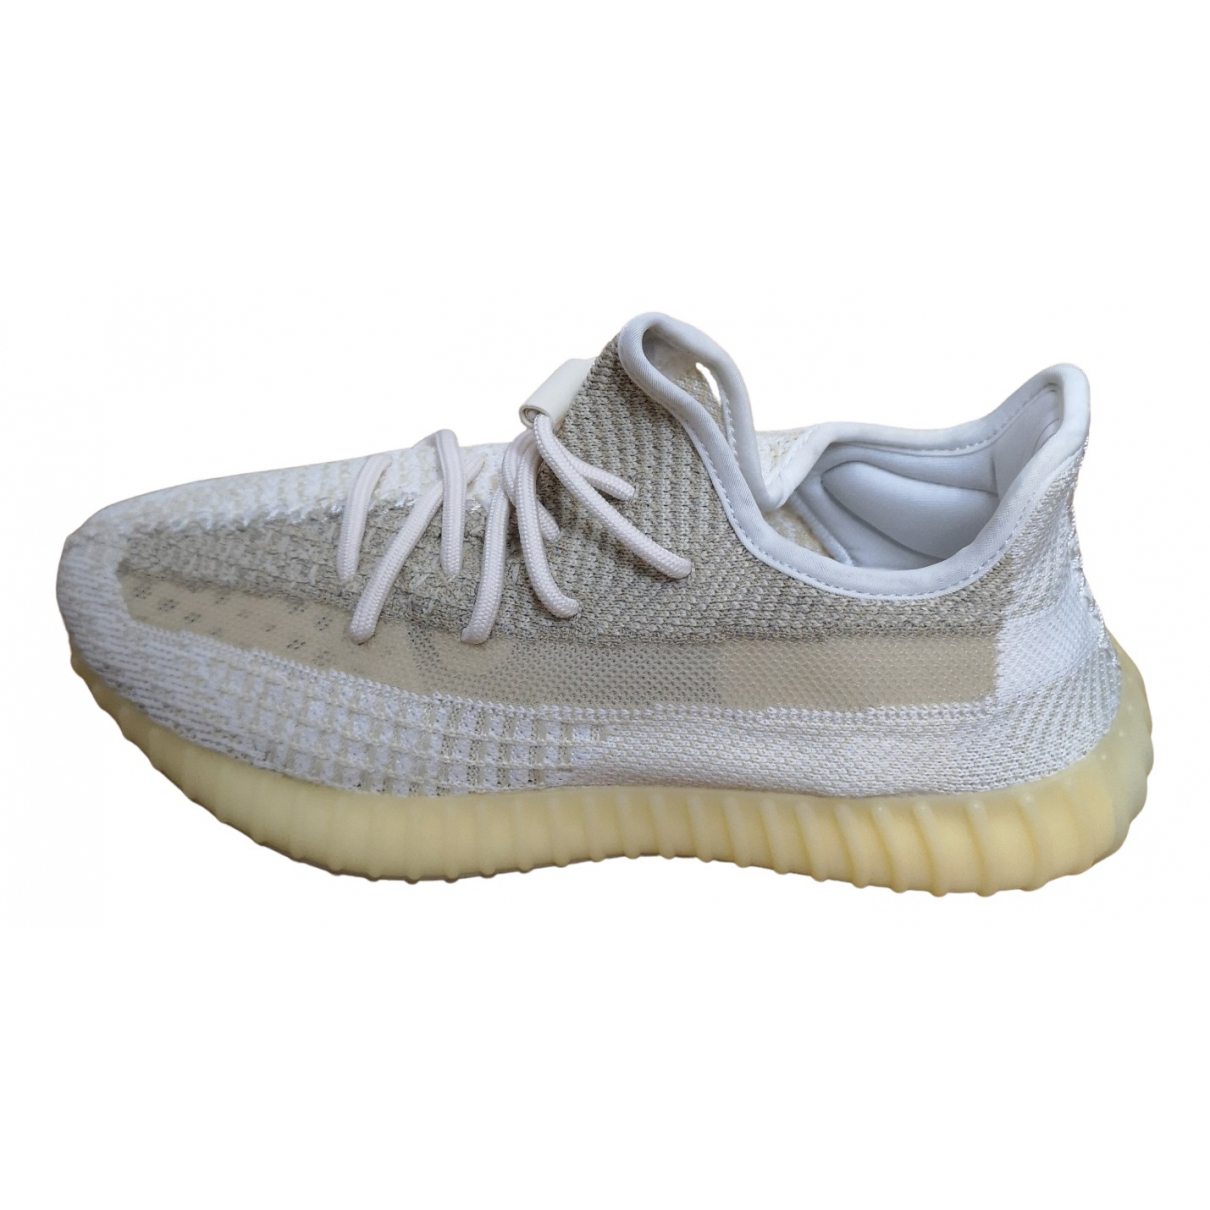 Yeezy X Adidas Boost 350 V2 White Cloth Trainers for Men 7.5 UK